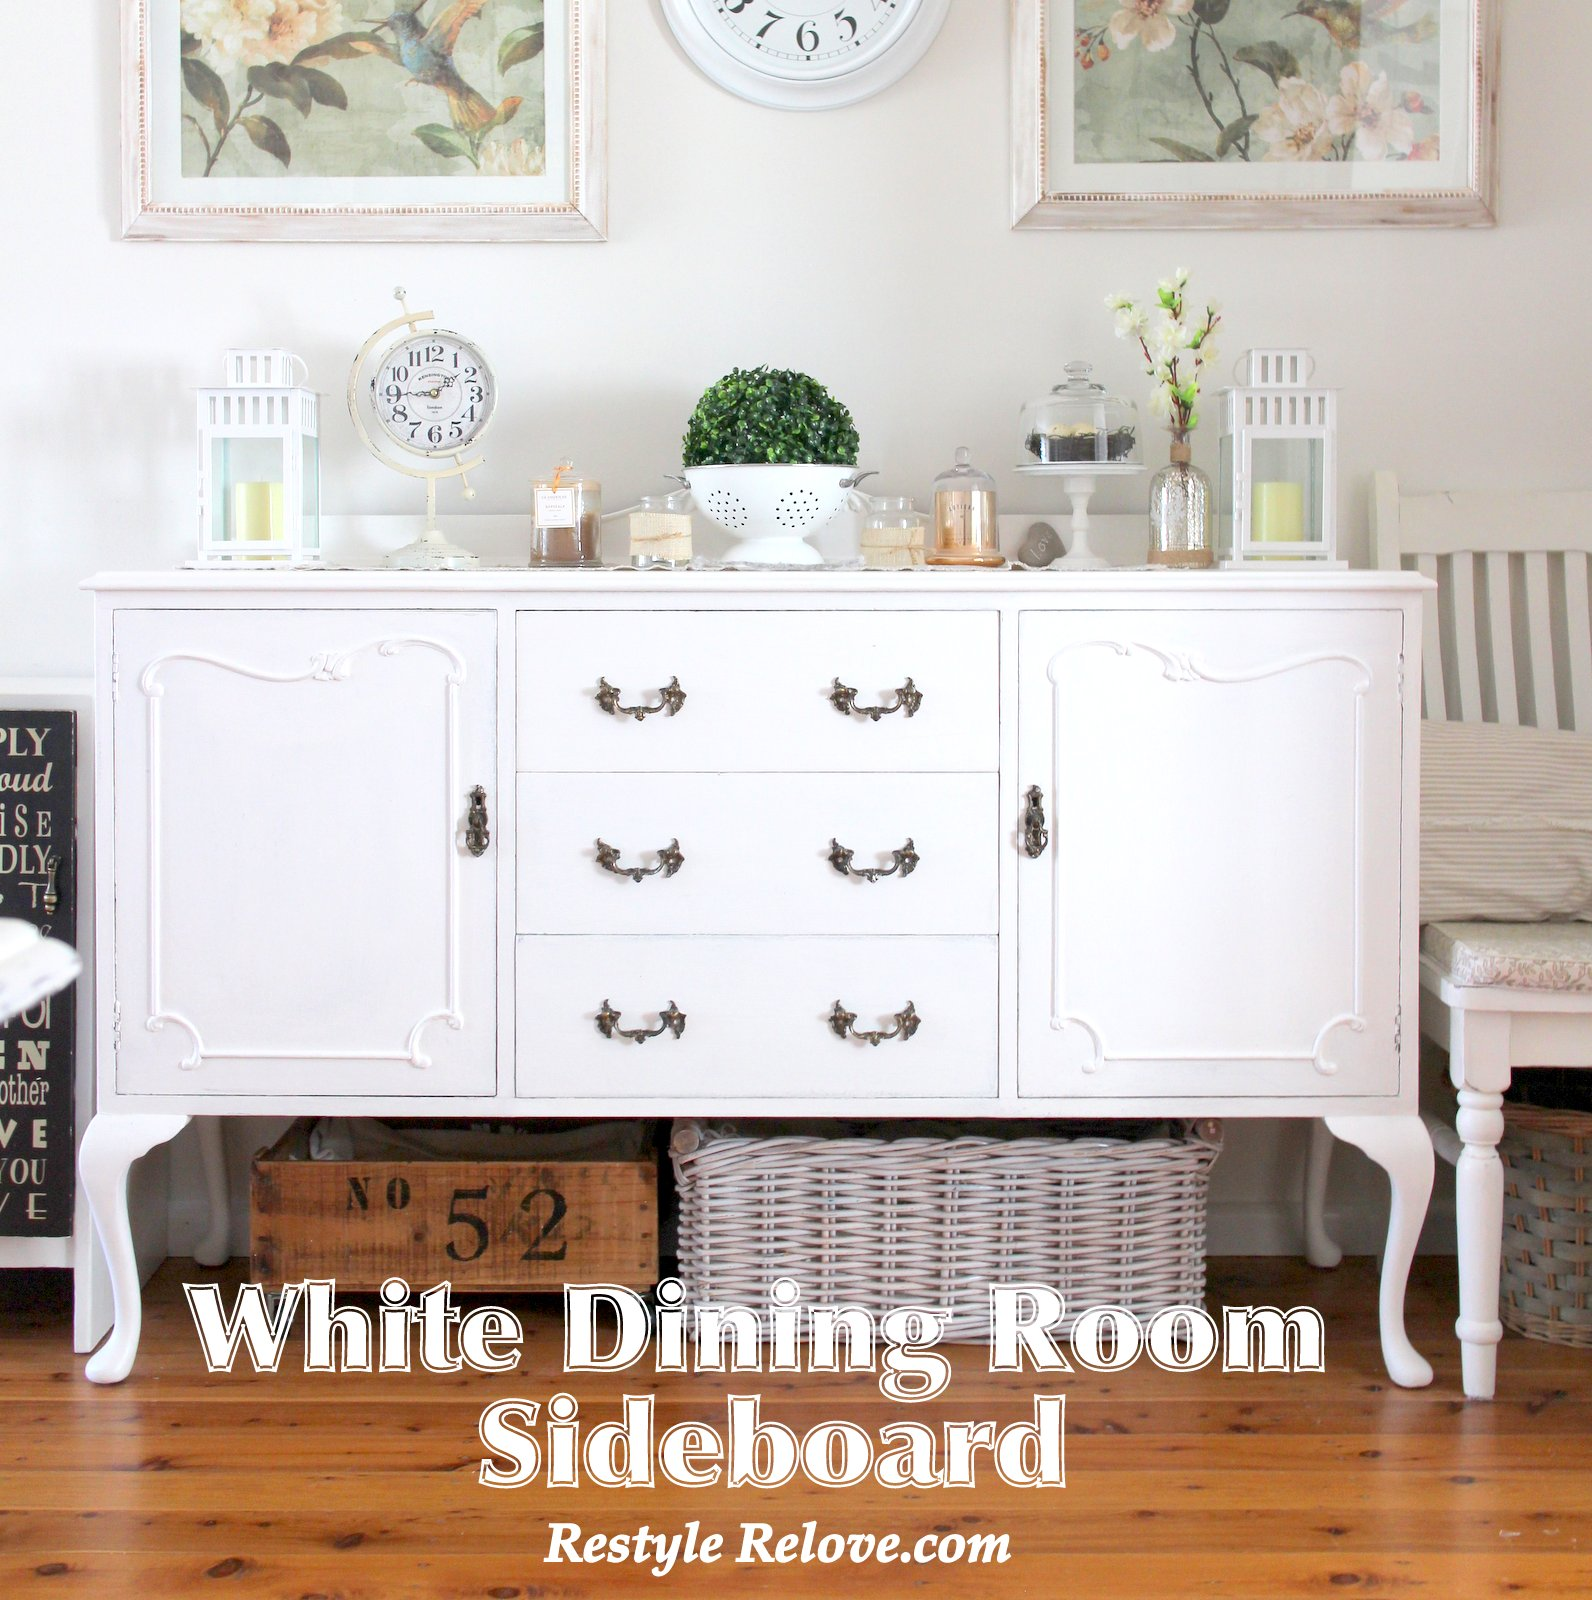 White Dining Room Sideboard